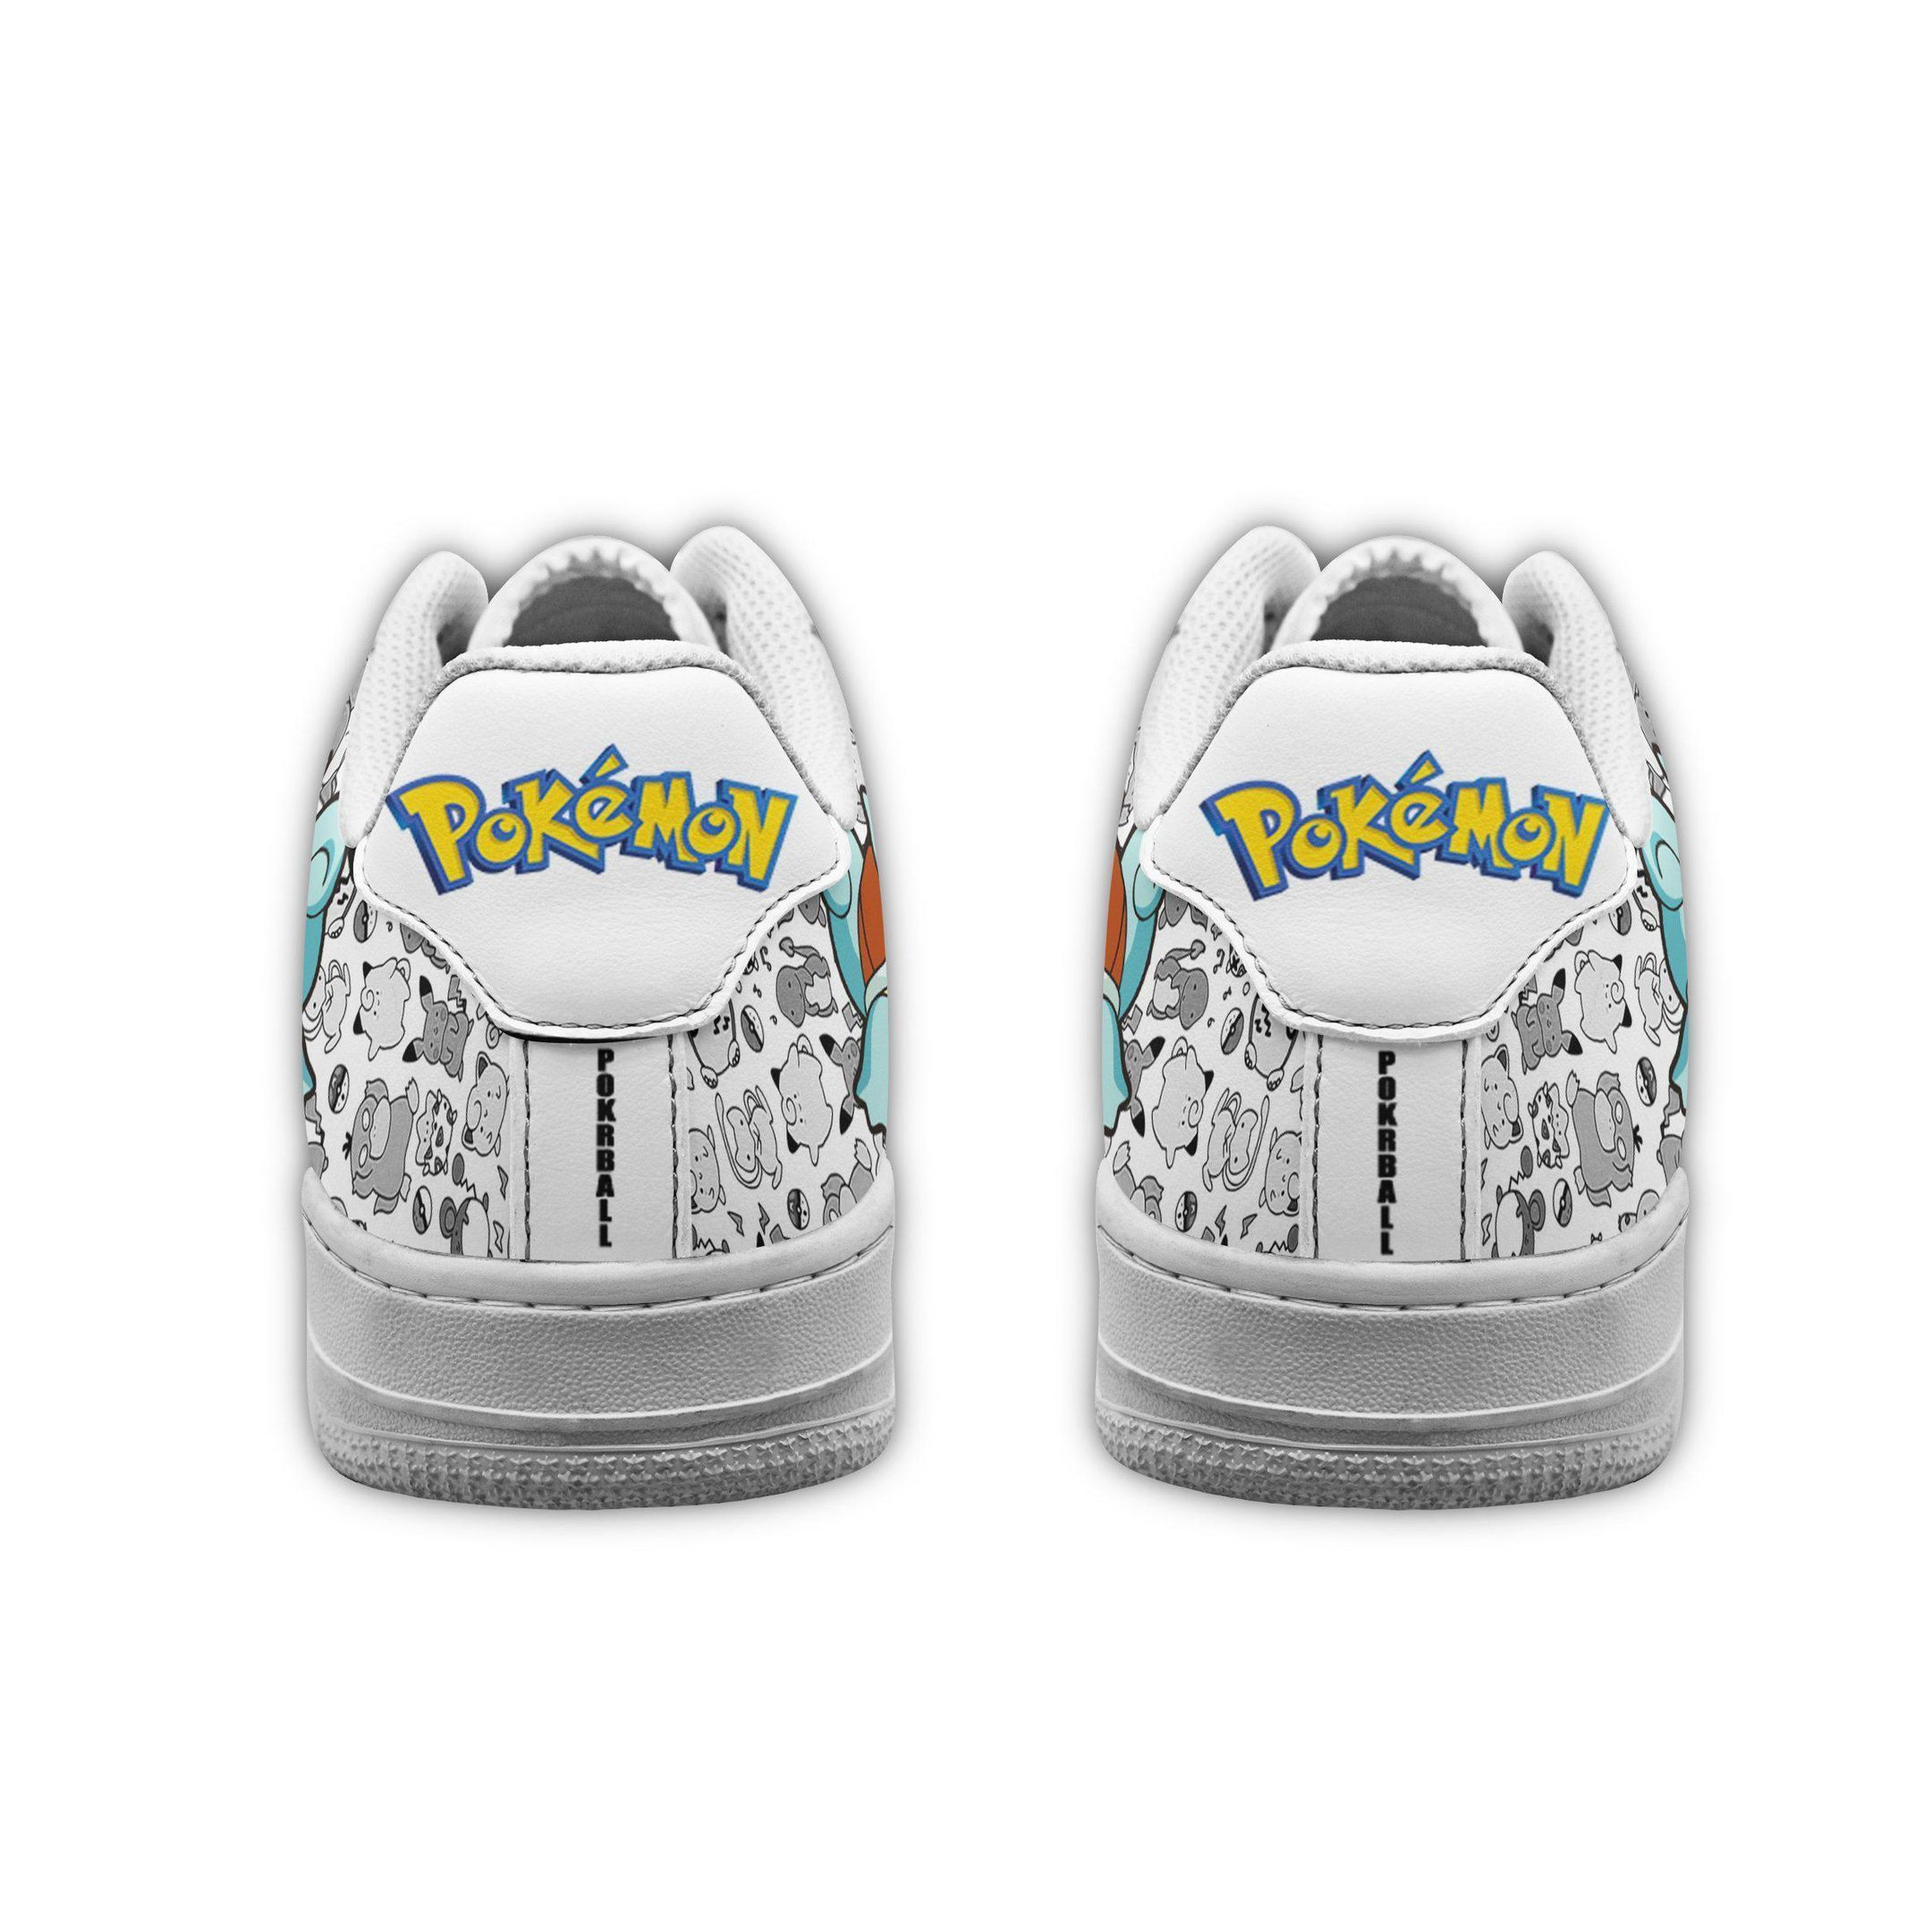 Squirtle Air Shoes Pokemon Shoes Fan Gift GO1012